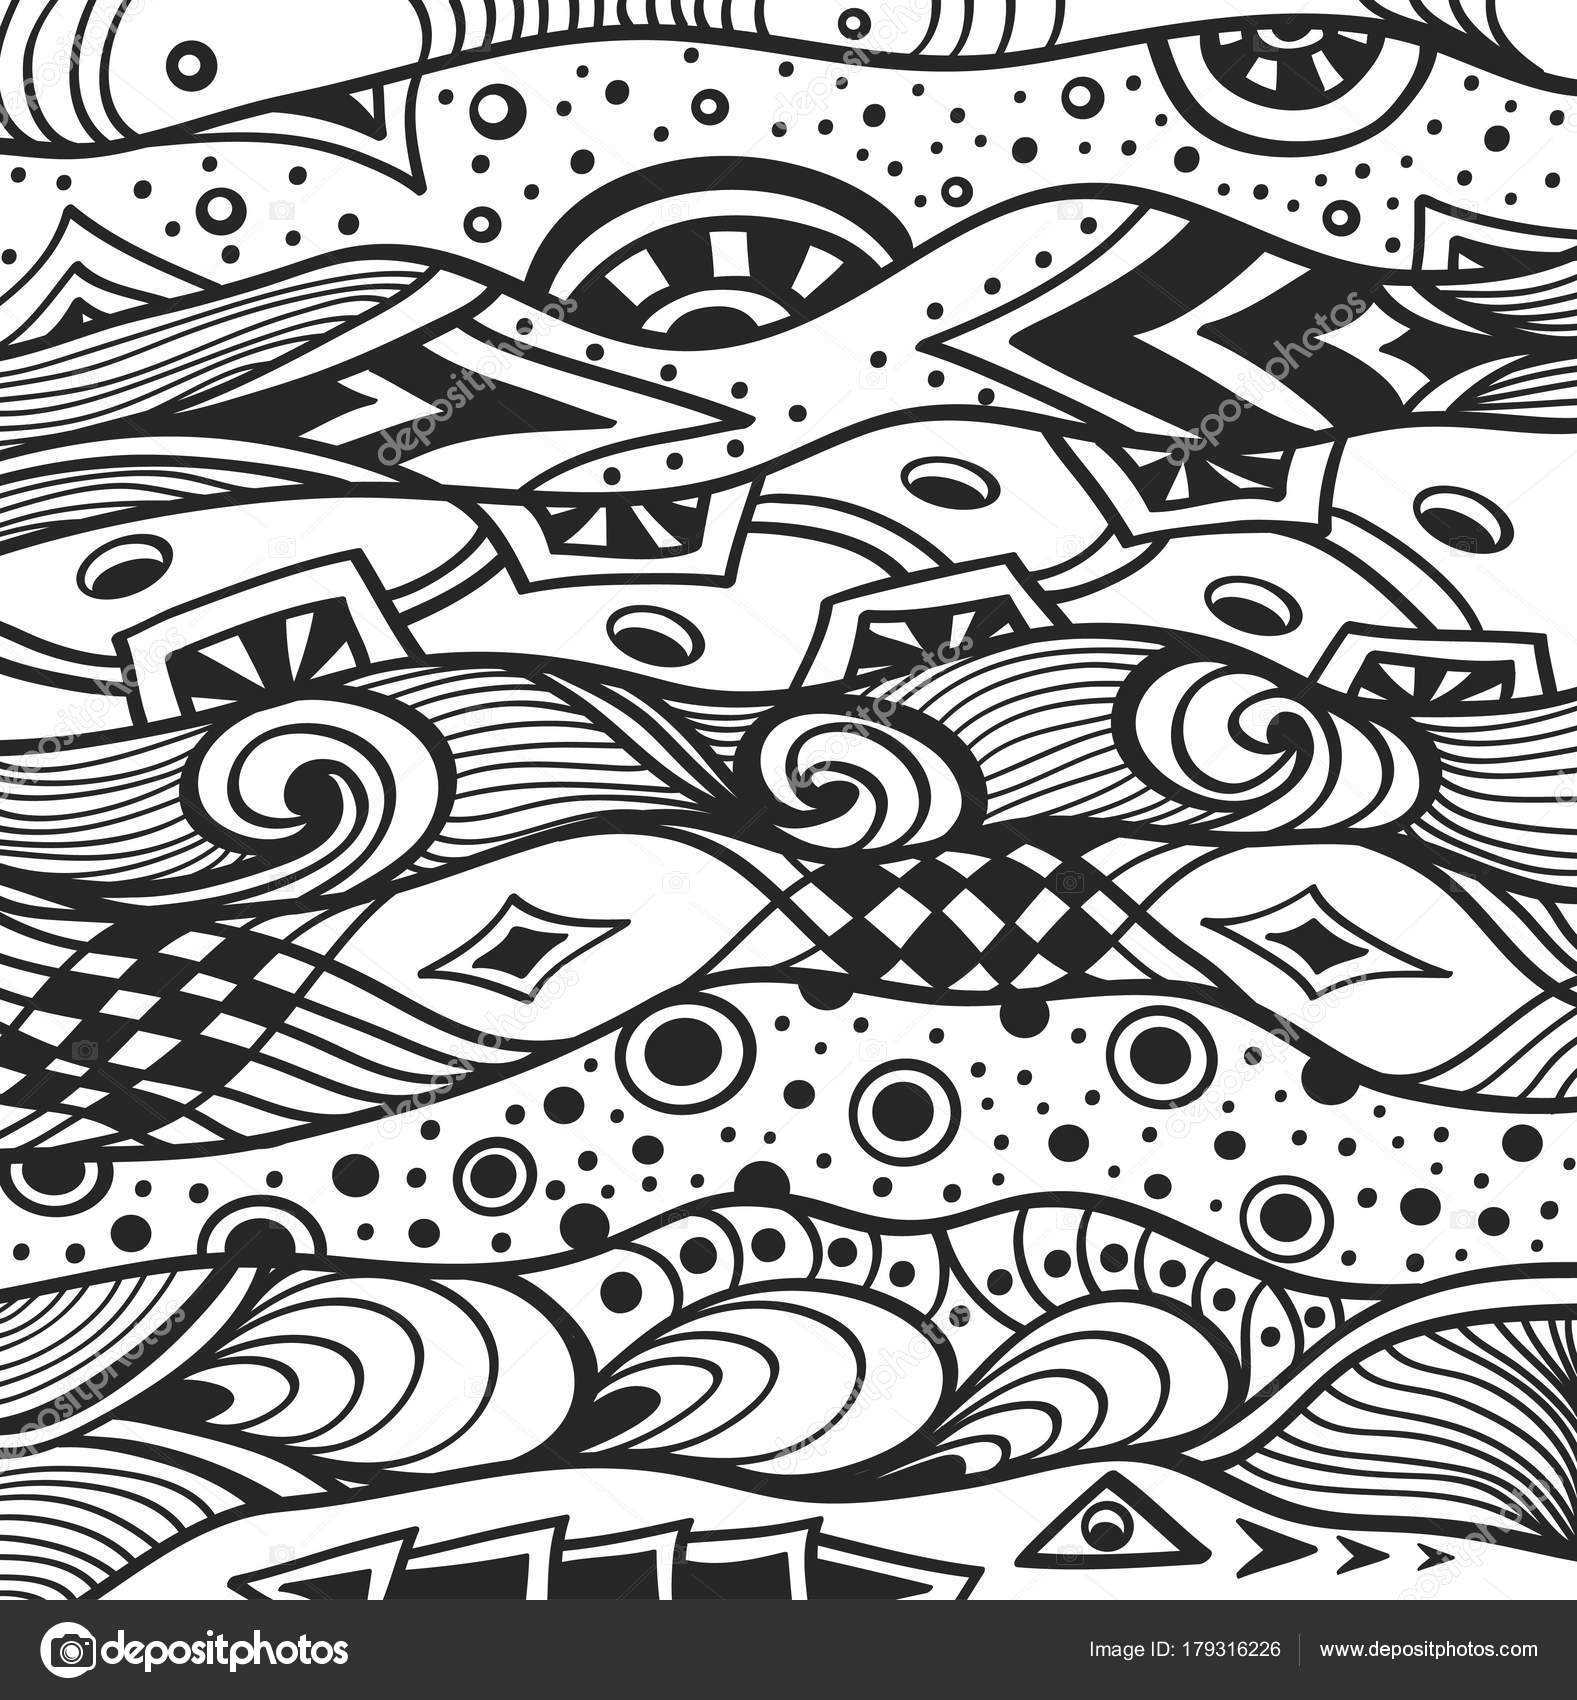 Paisley coloriage 57 Abstract Doodle Zentangle Coloring pages ... | 1700x1577